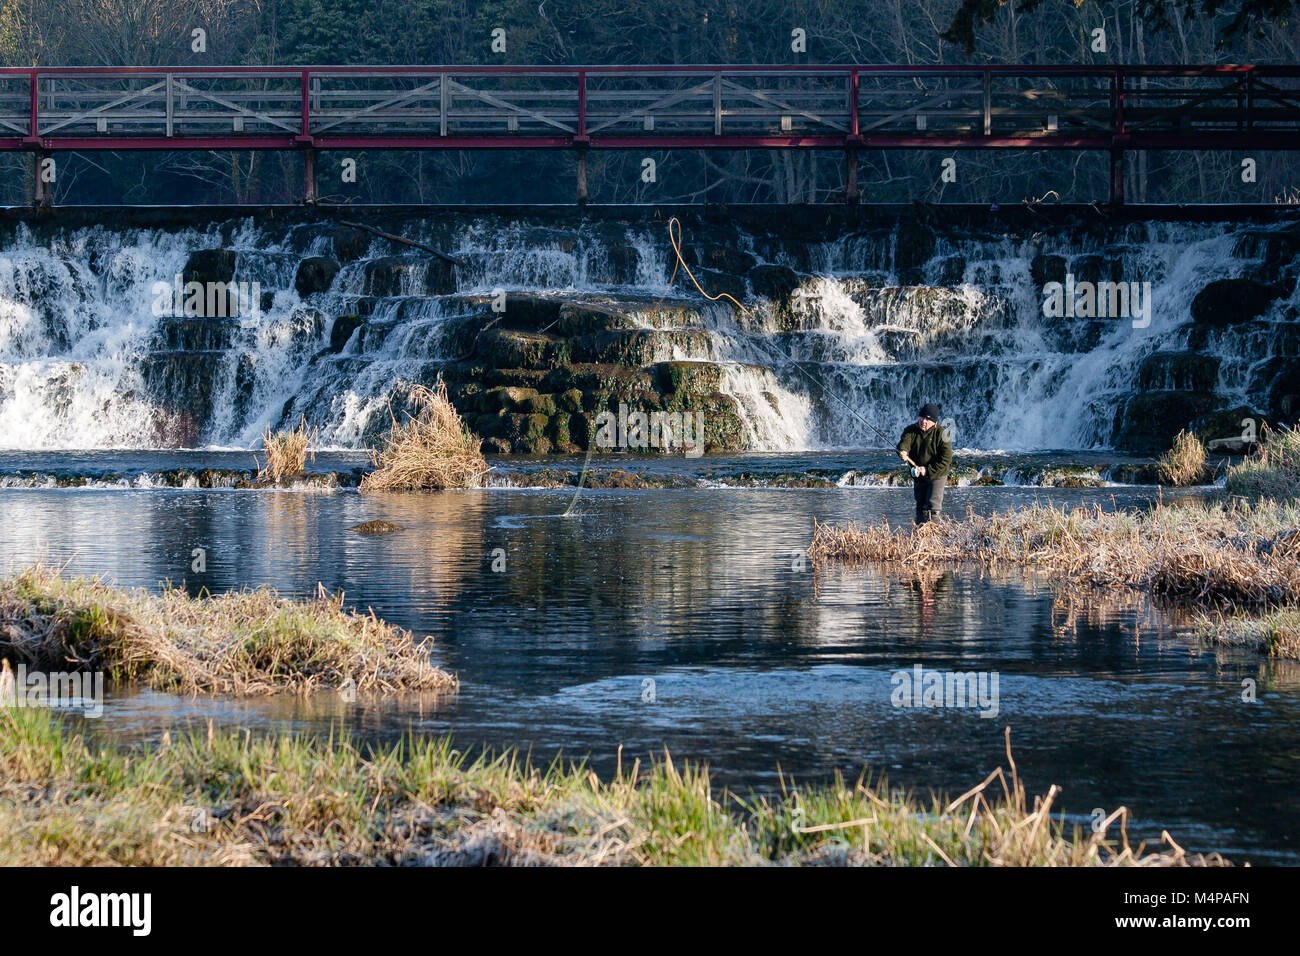 man-angler-fly-fishing-at-the-salmon-lea